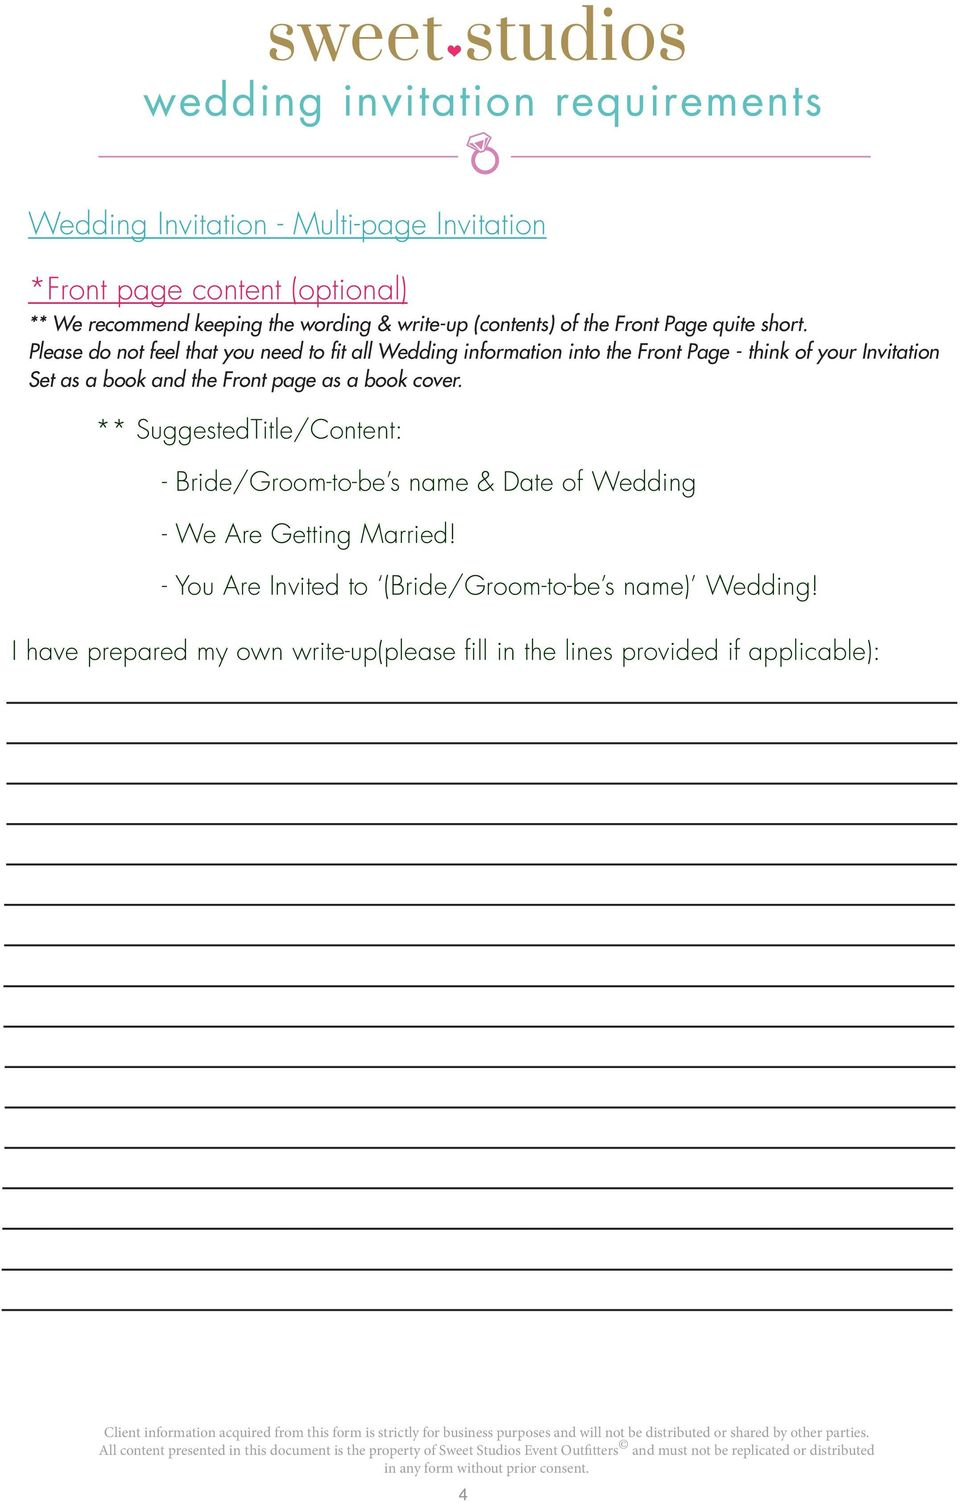 Please do not feel that you need to fit all Wedding information into the Front Page - think of your